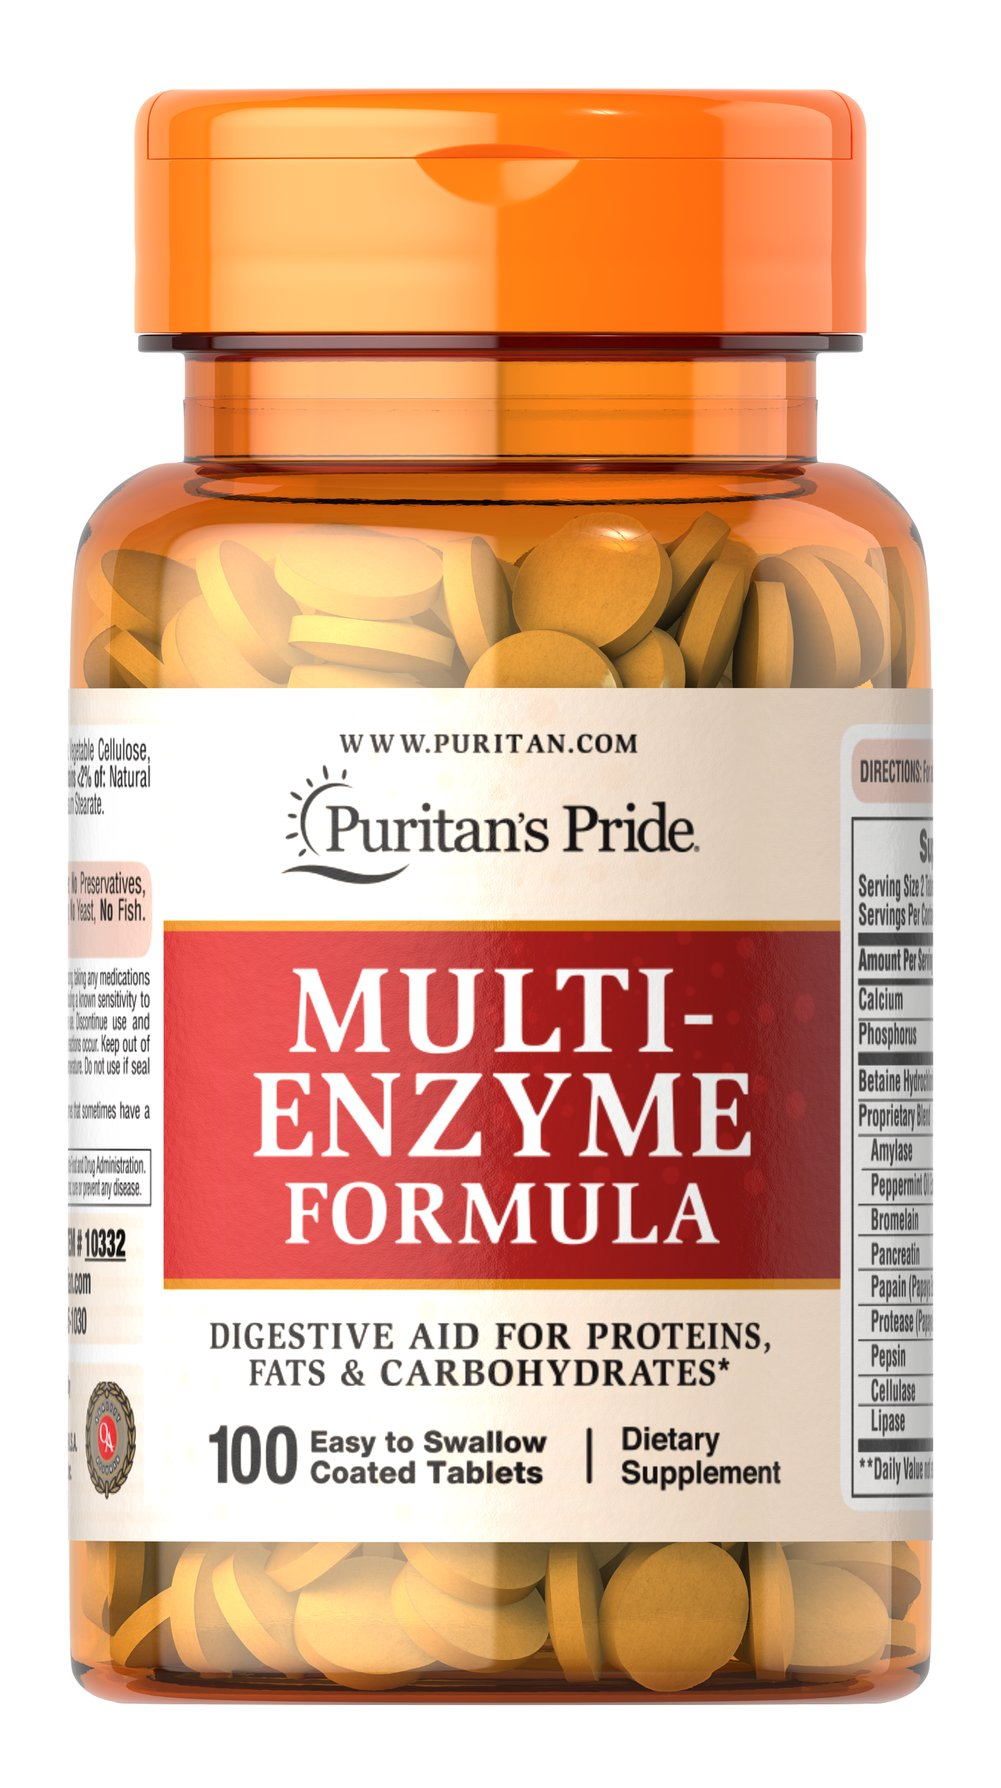 Multi Enzyme <p>Digestive aid for proteins, fats and carbohydrates.** Ingredients include enzymes that can help make nutrients available for the body's energy needs, cell growth and other vital functions.** This product is coated for ease of swallowing.</p>  100 Tablets  $14.99